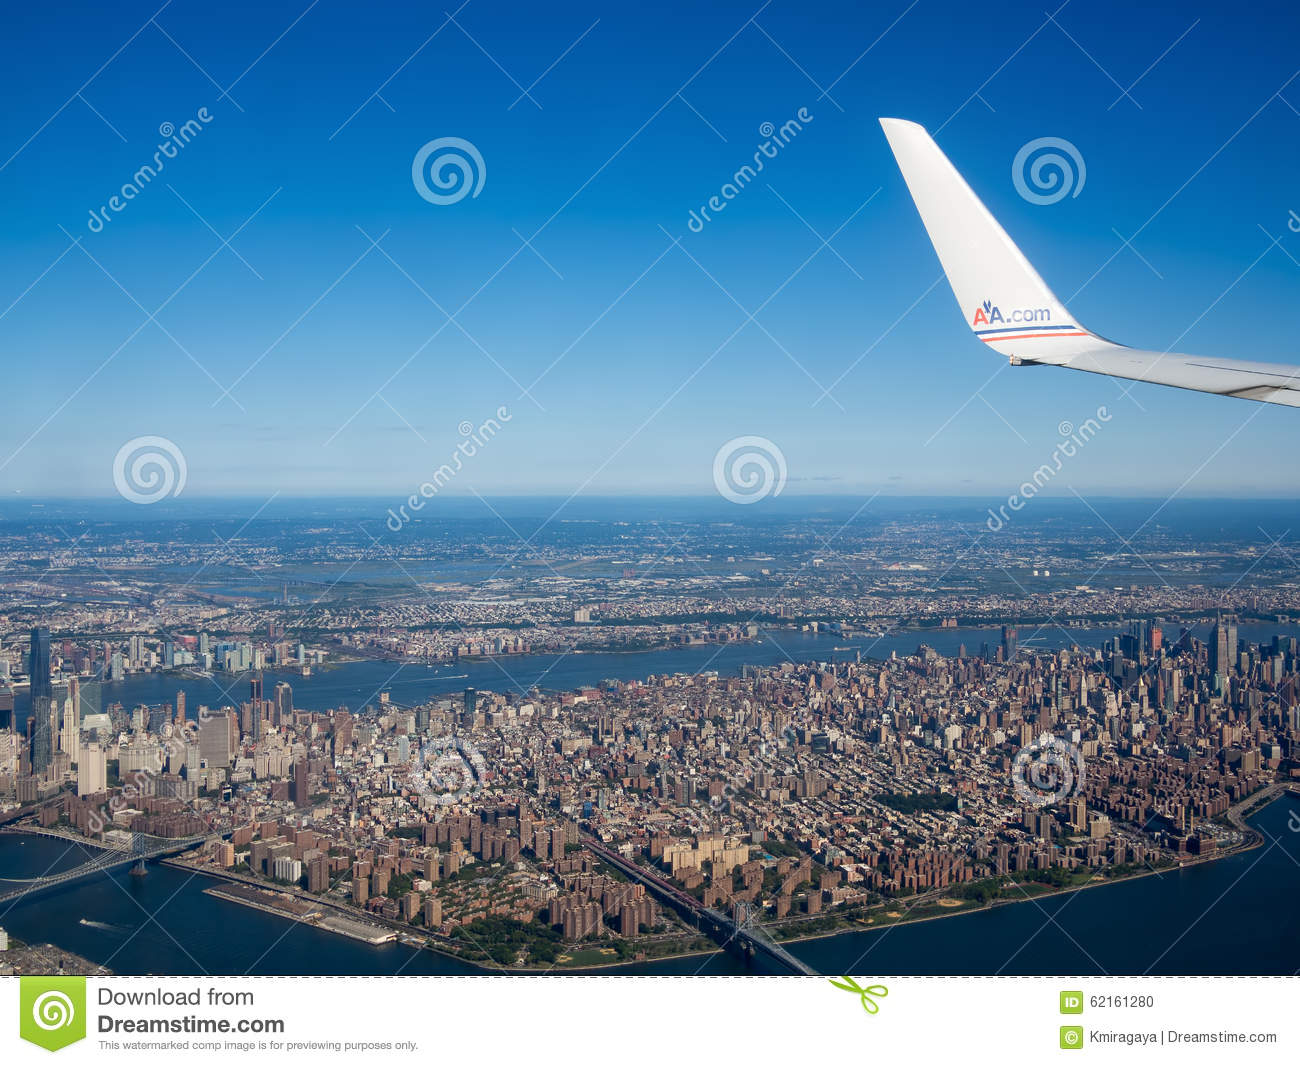 American Airlines plane flying over New York City